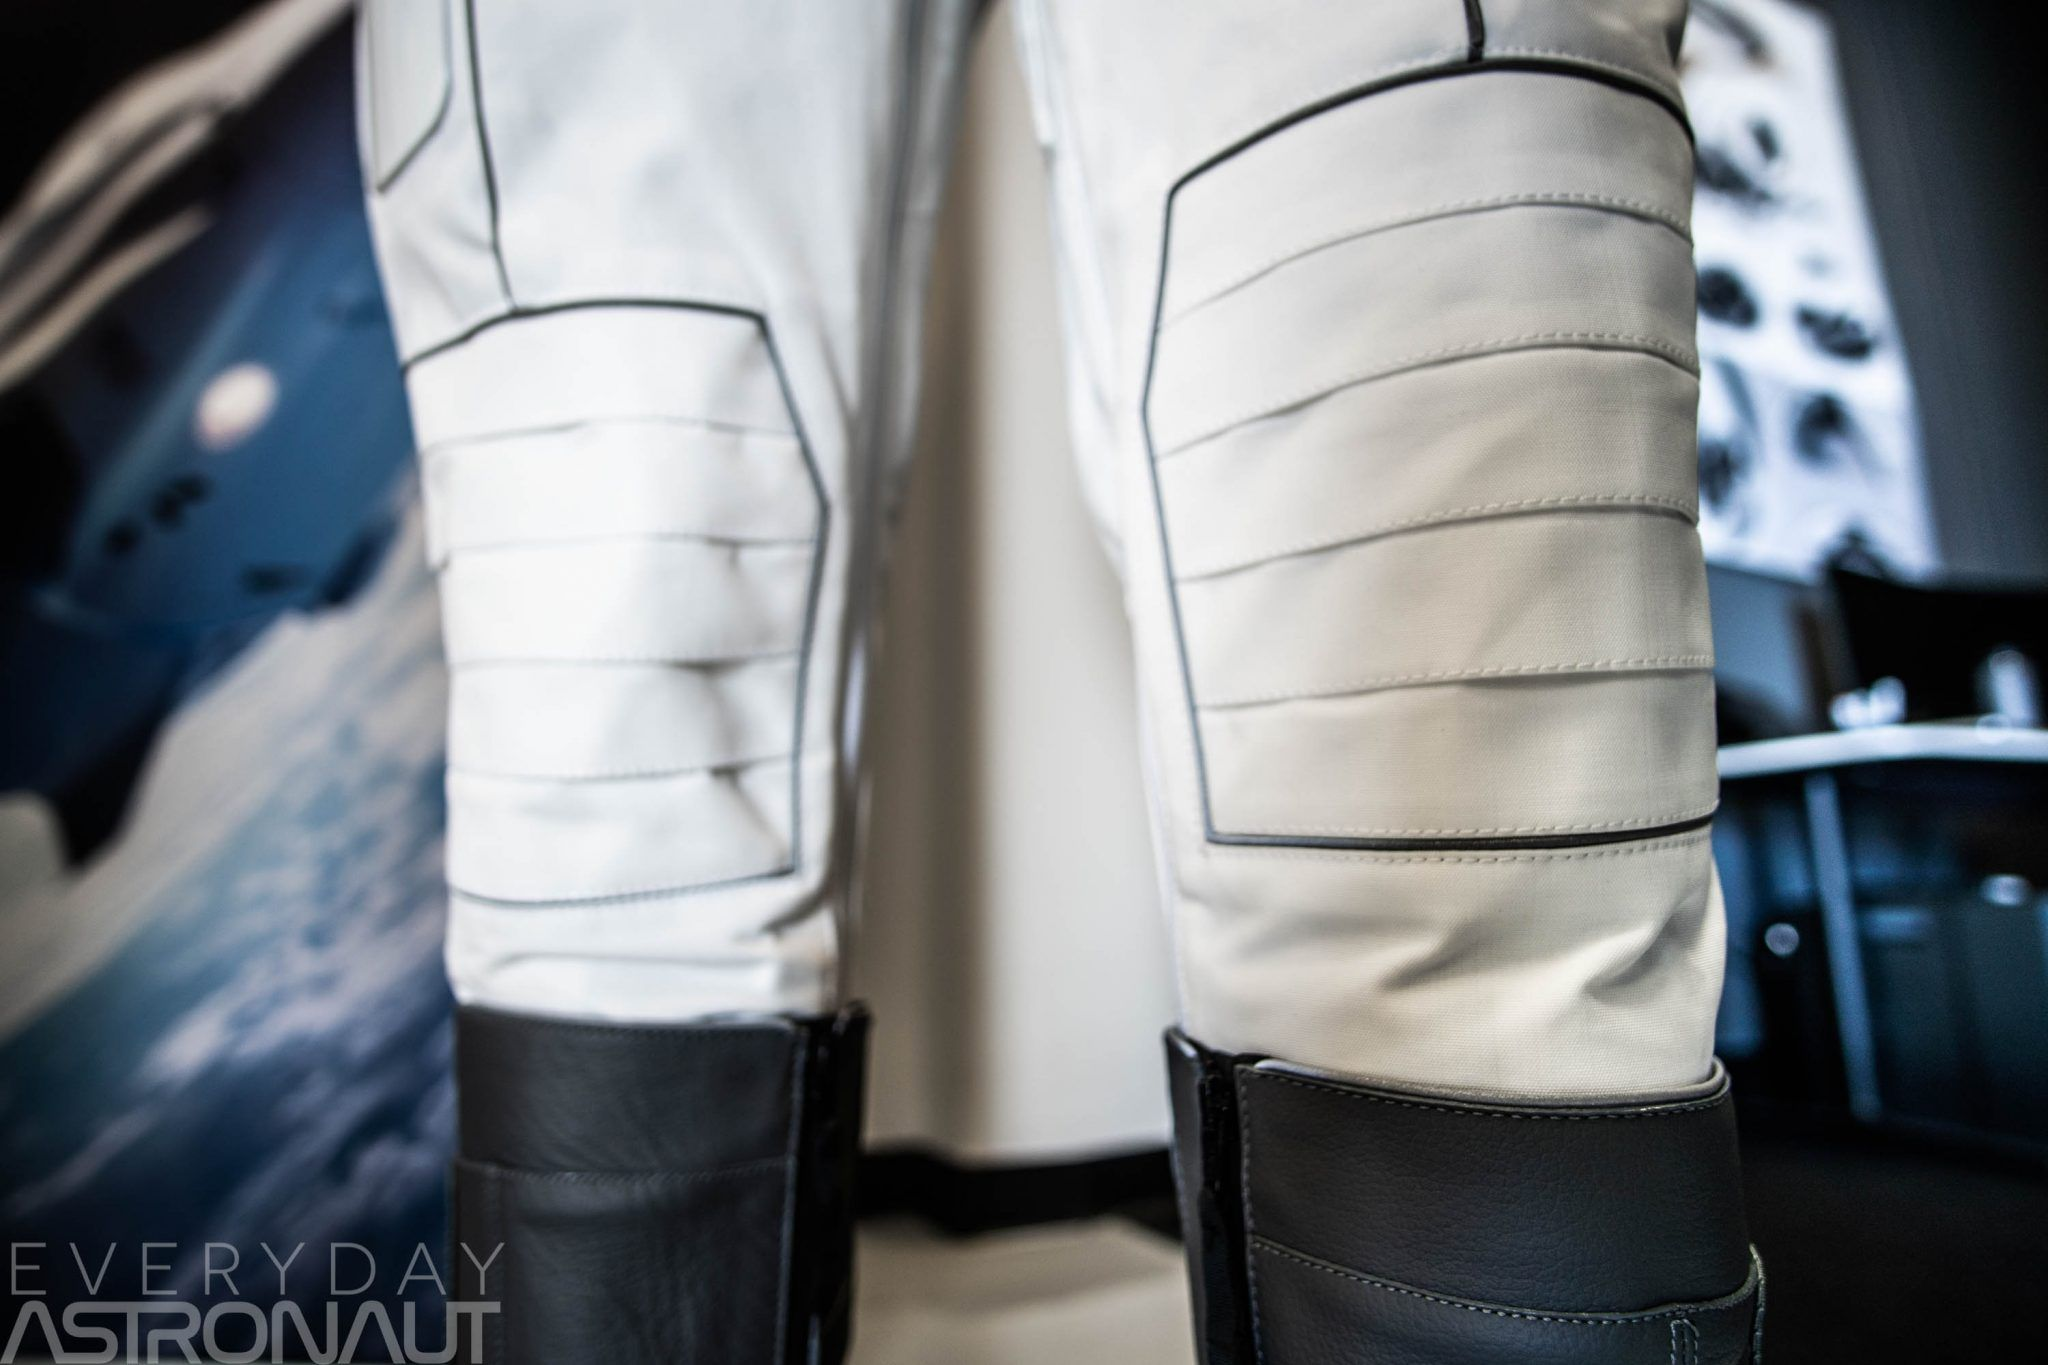 Up close and personal with SpaceX's space suit - Everyday ...